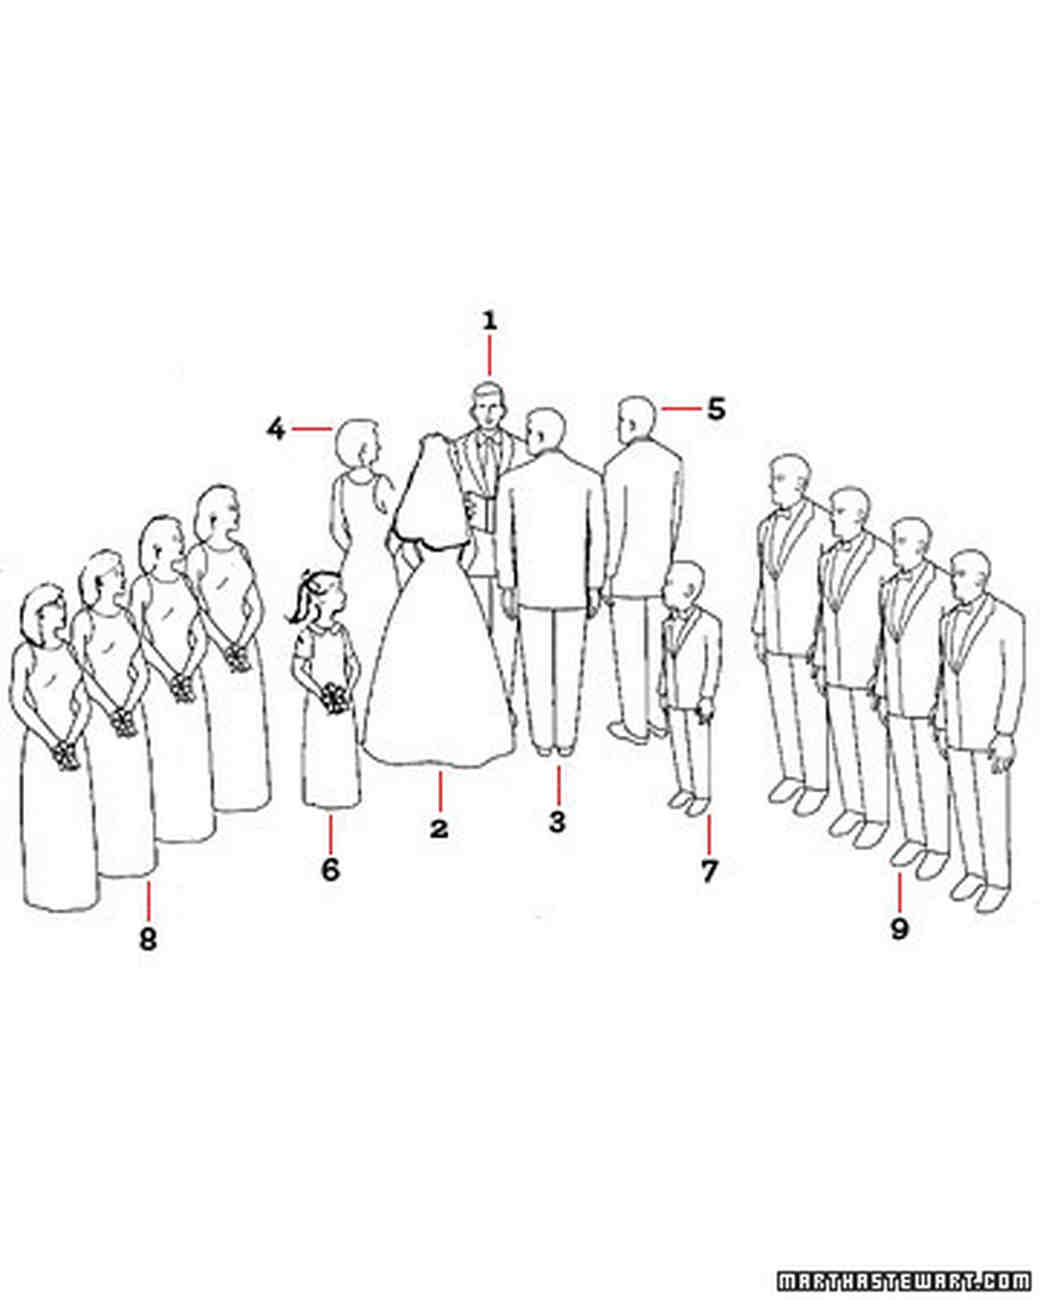 Diagram Your Big Day: Christian Wedding Ceremony Basics | Martha ...